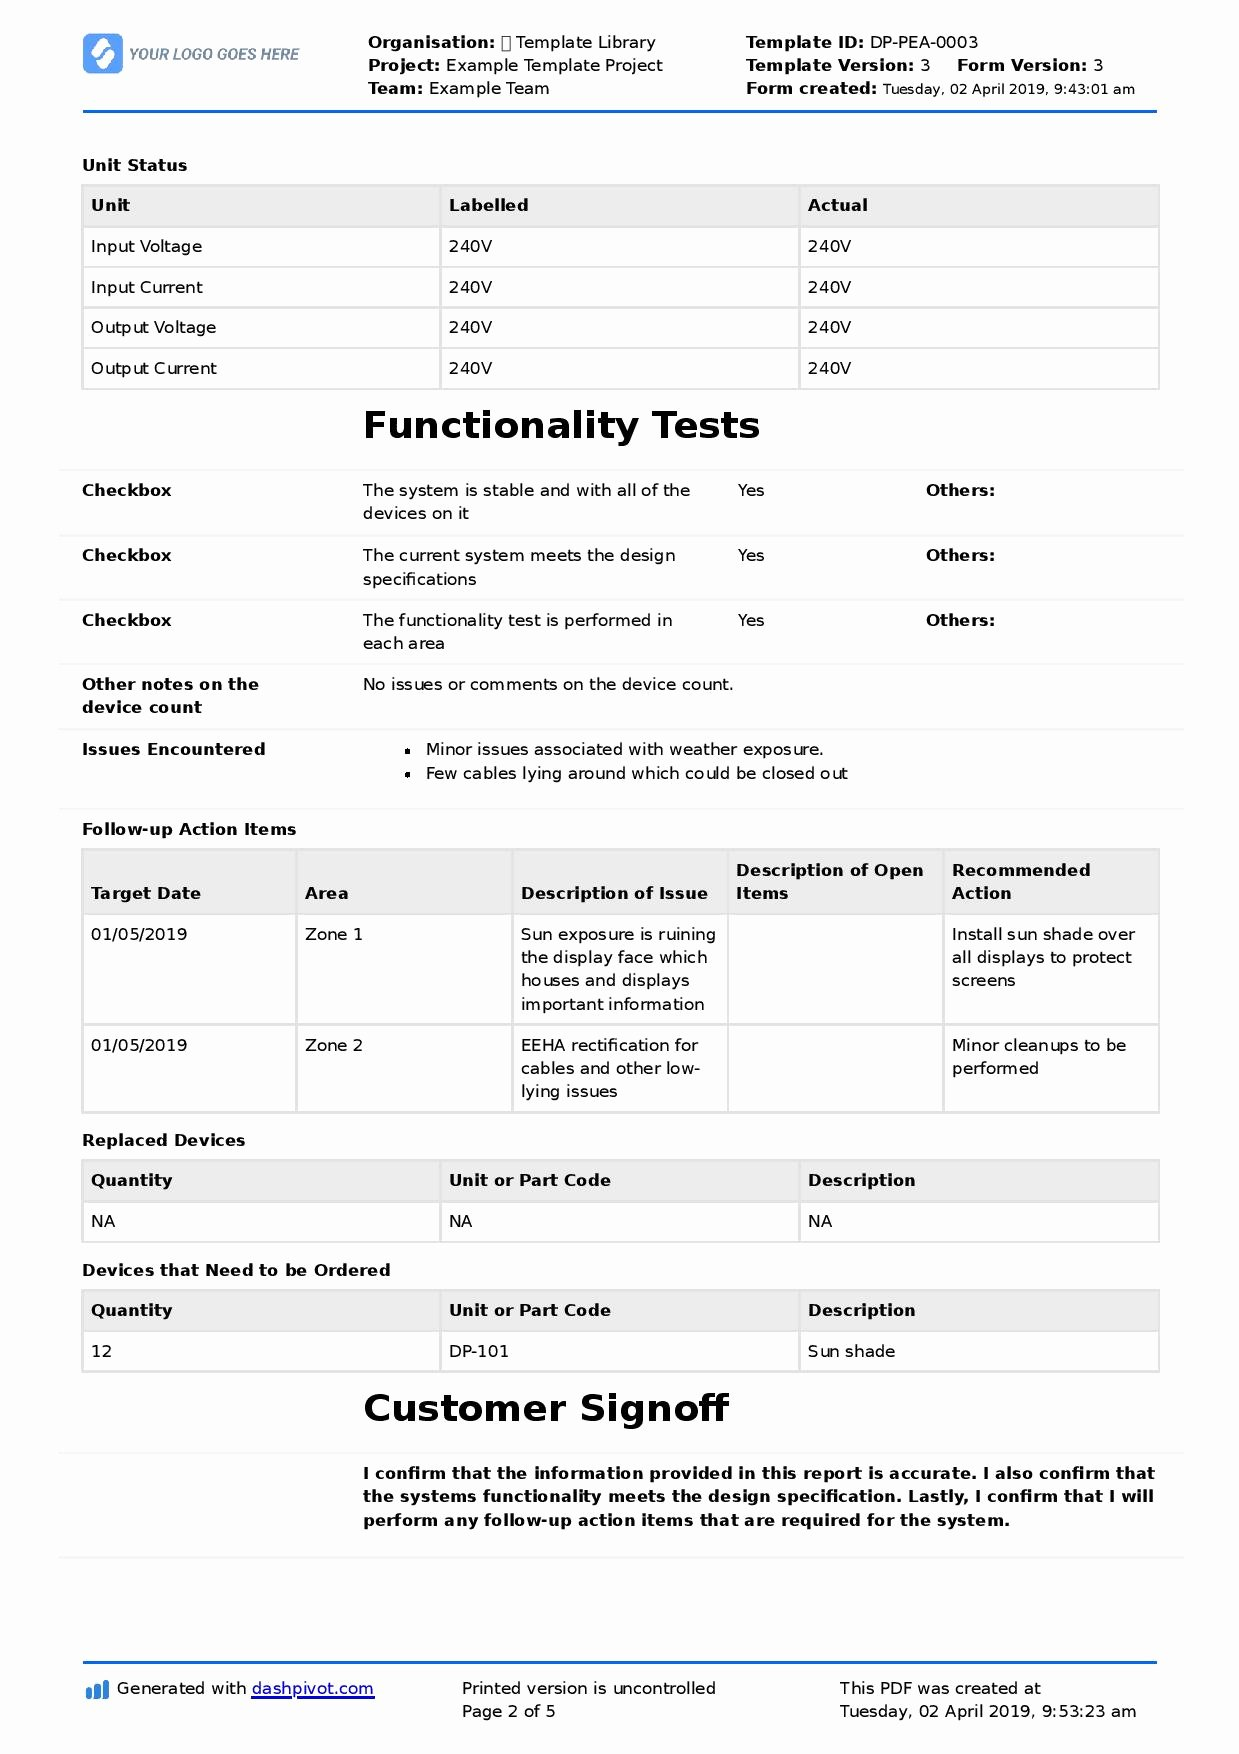 Field Service Report Template Beautiful Field Service Report Template Better format Than Word Excel Pdf